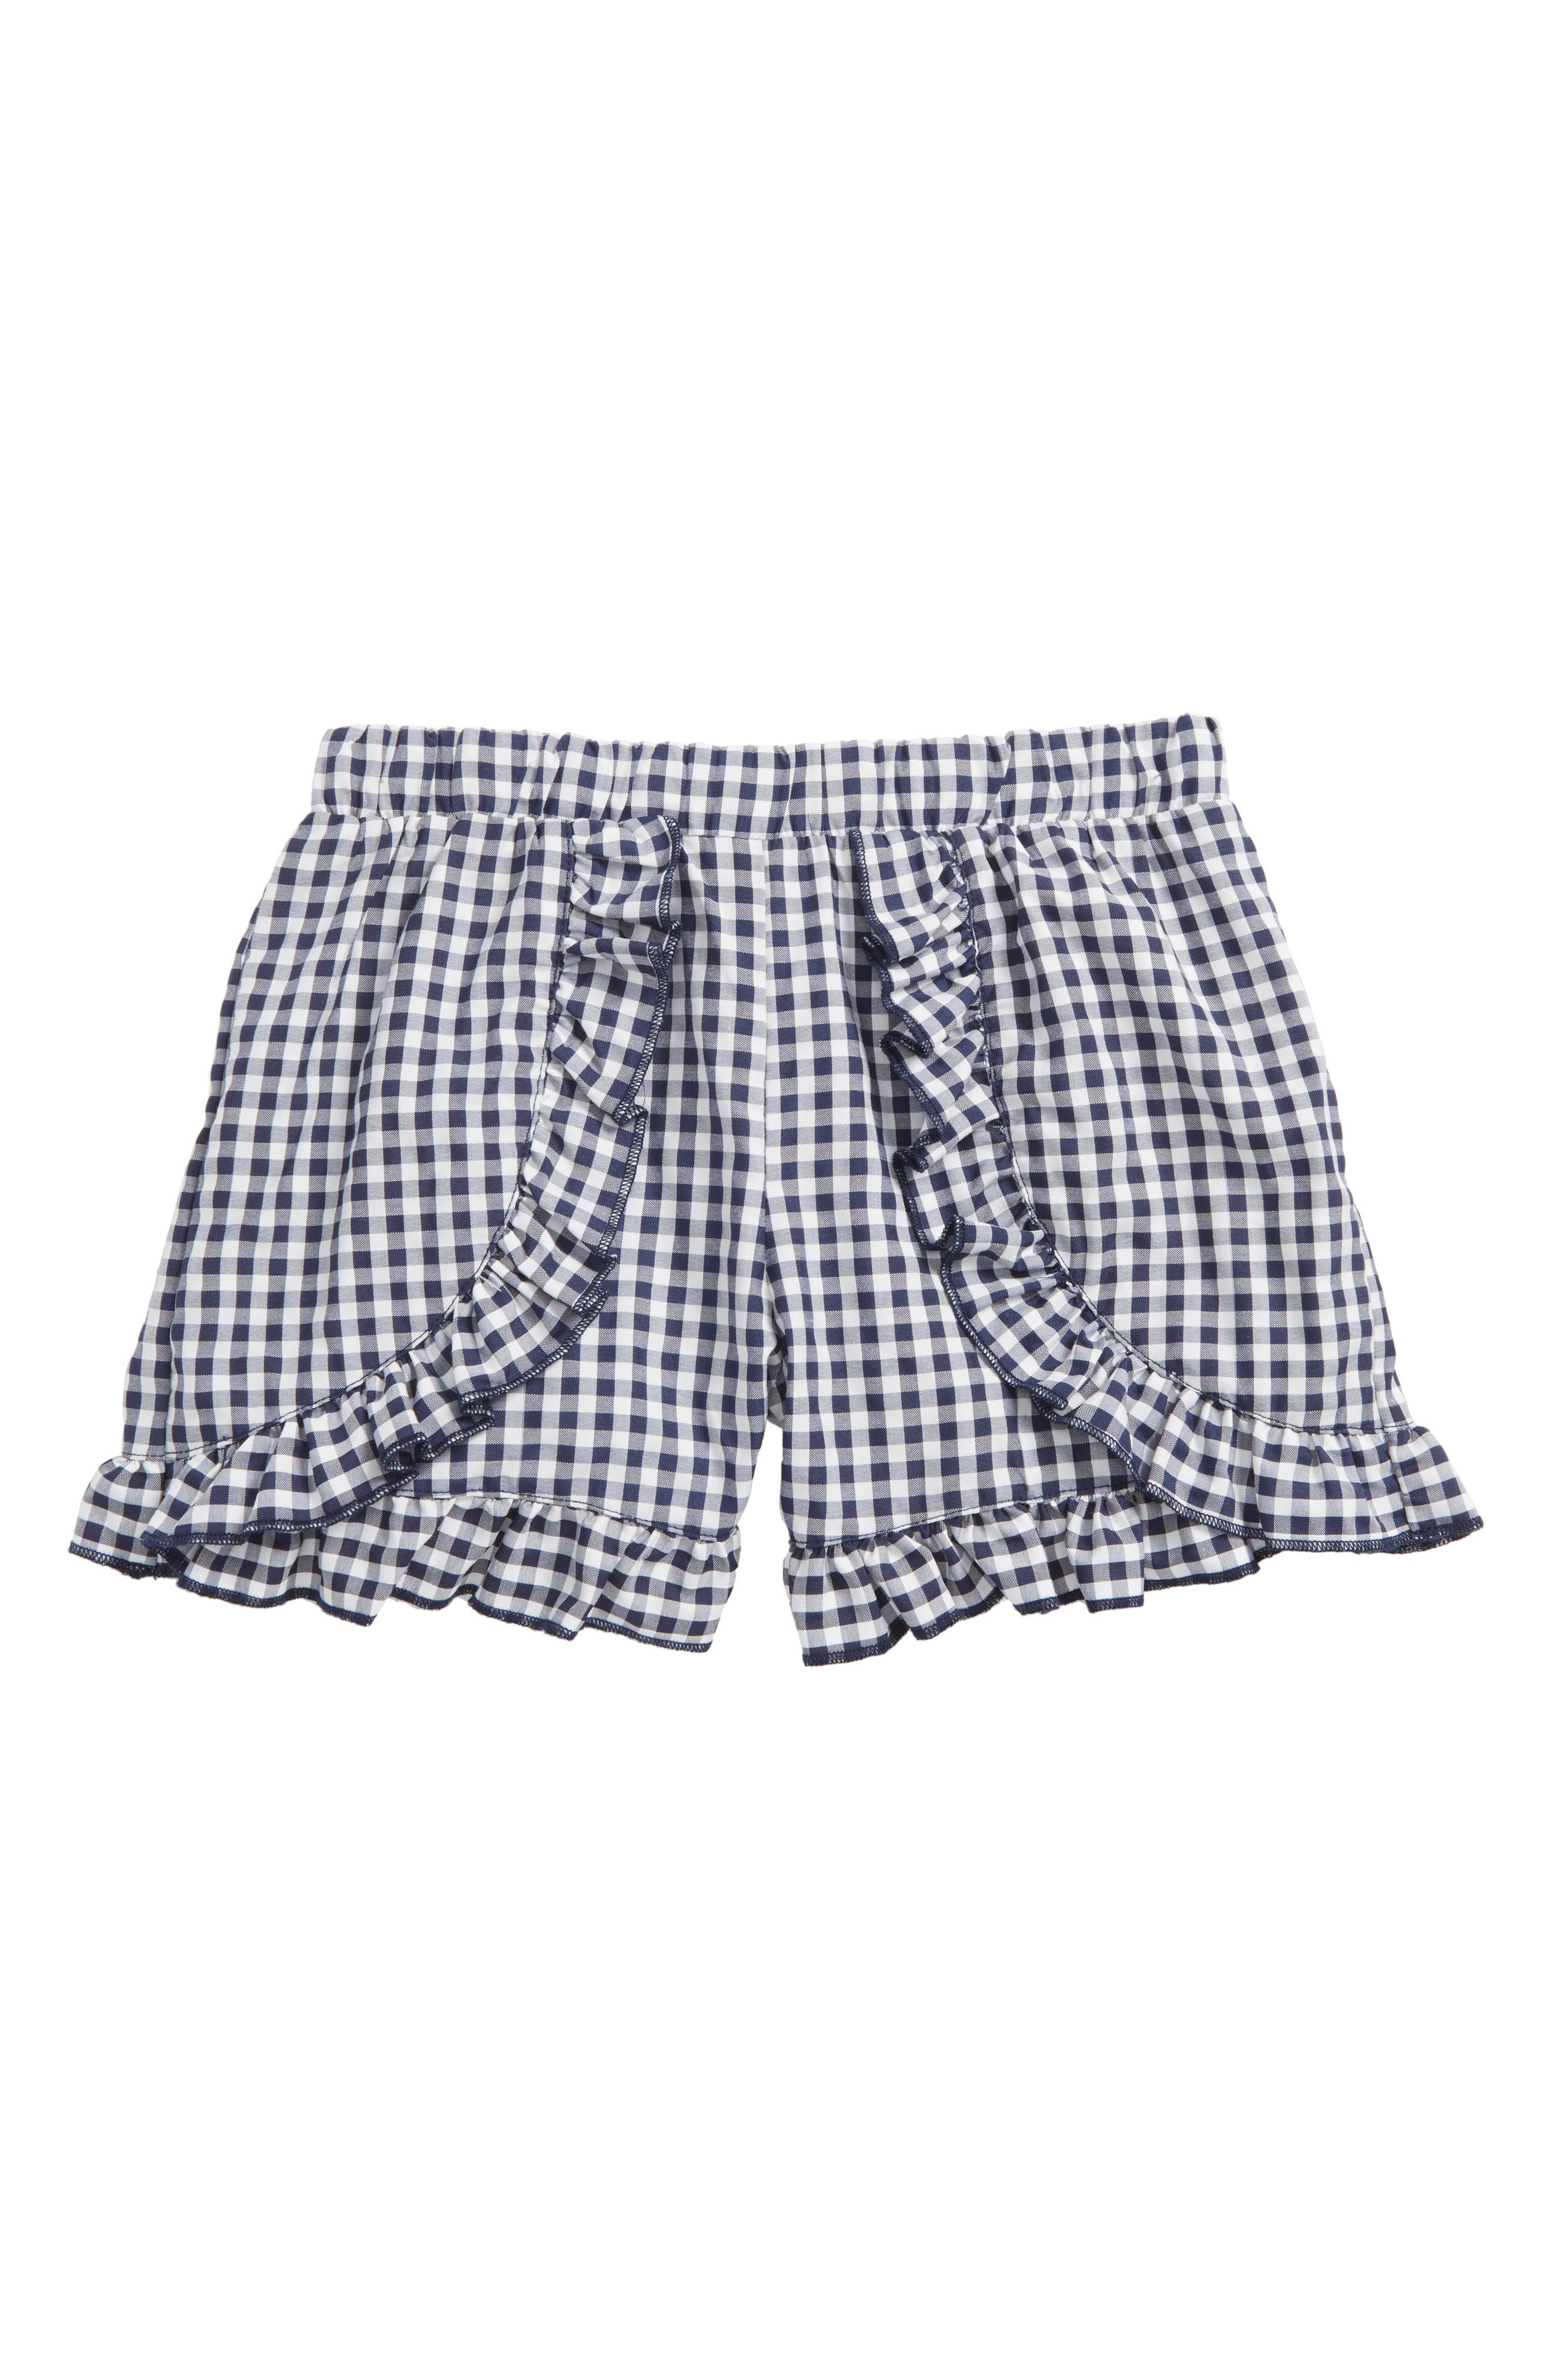 Ruffle Gingham Shorts,                             Main thumbnail 1, color,                             Navy White